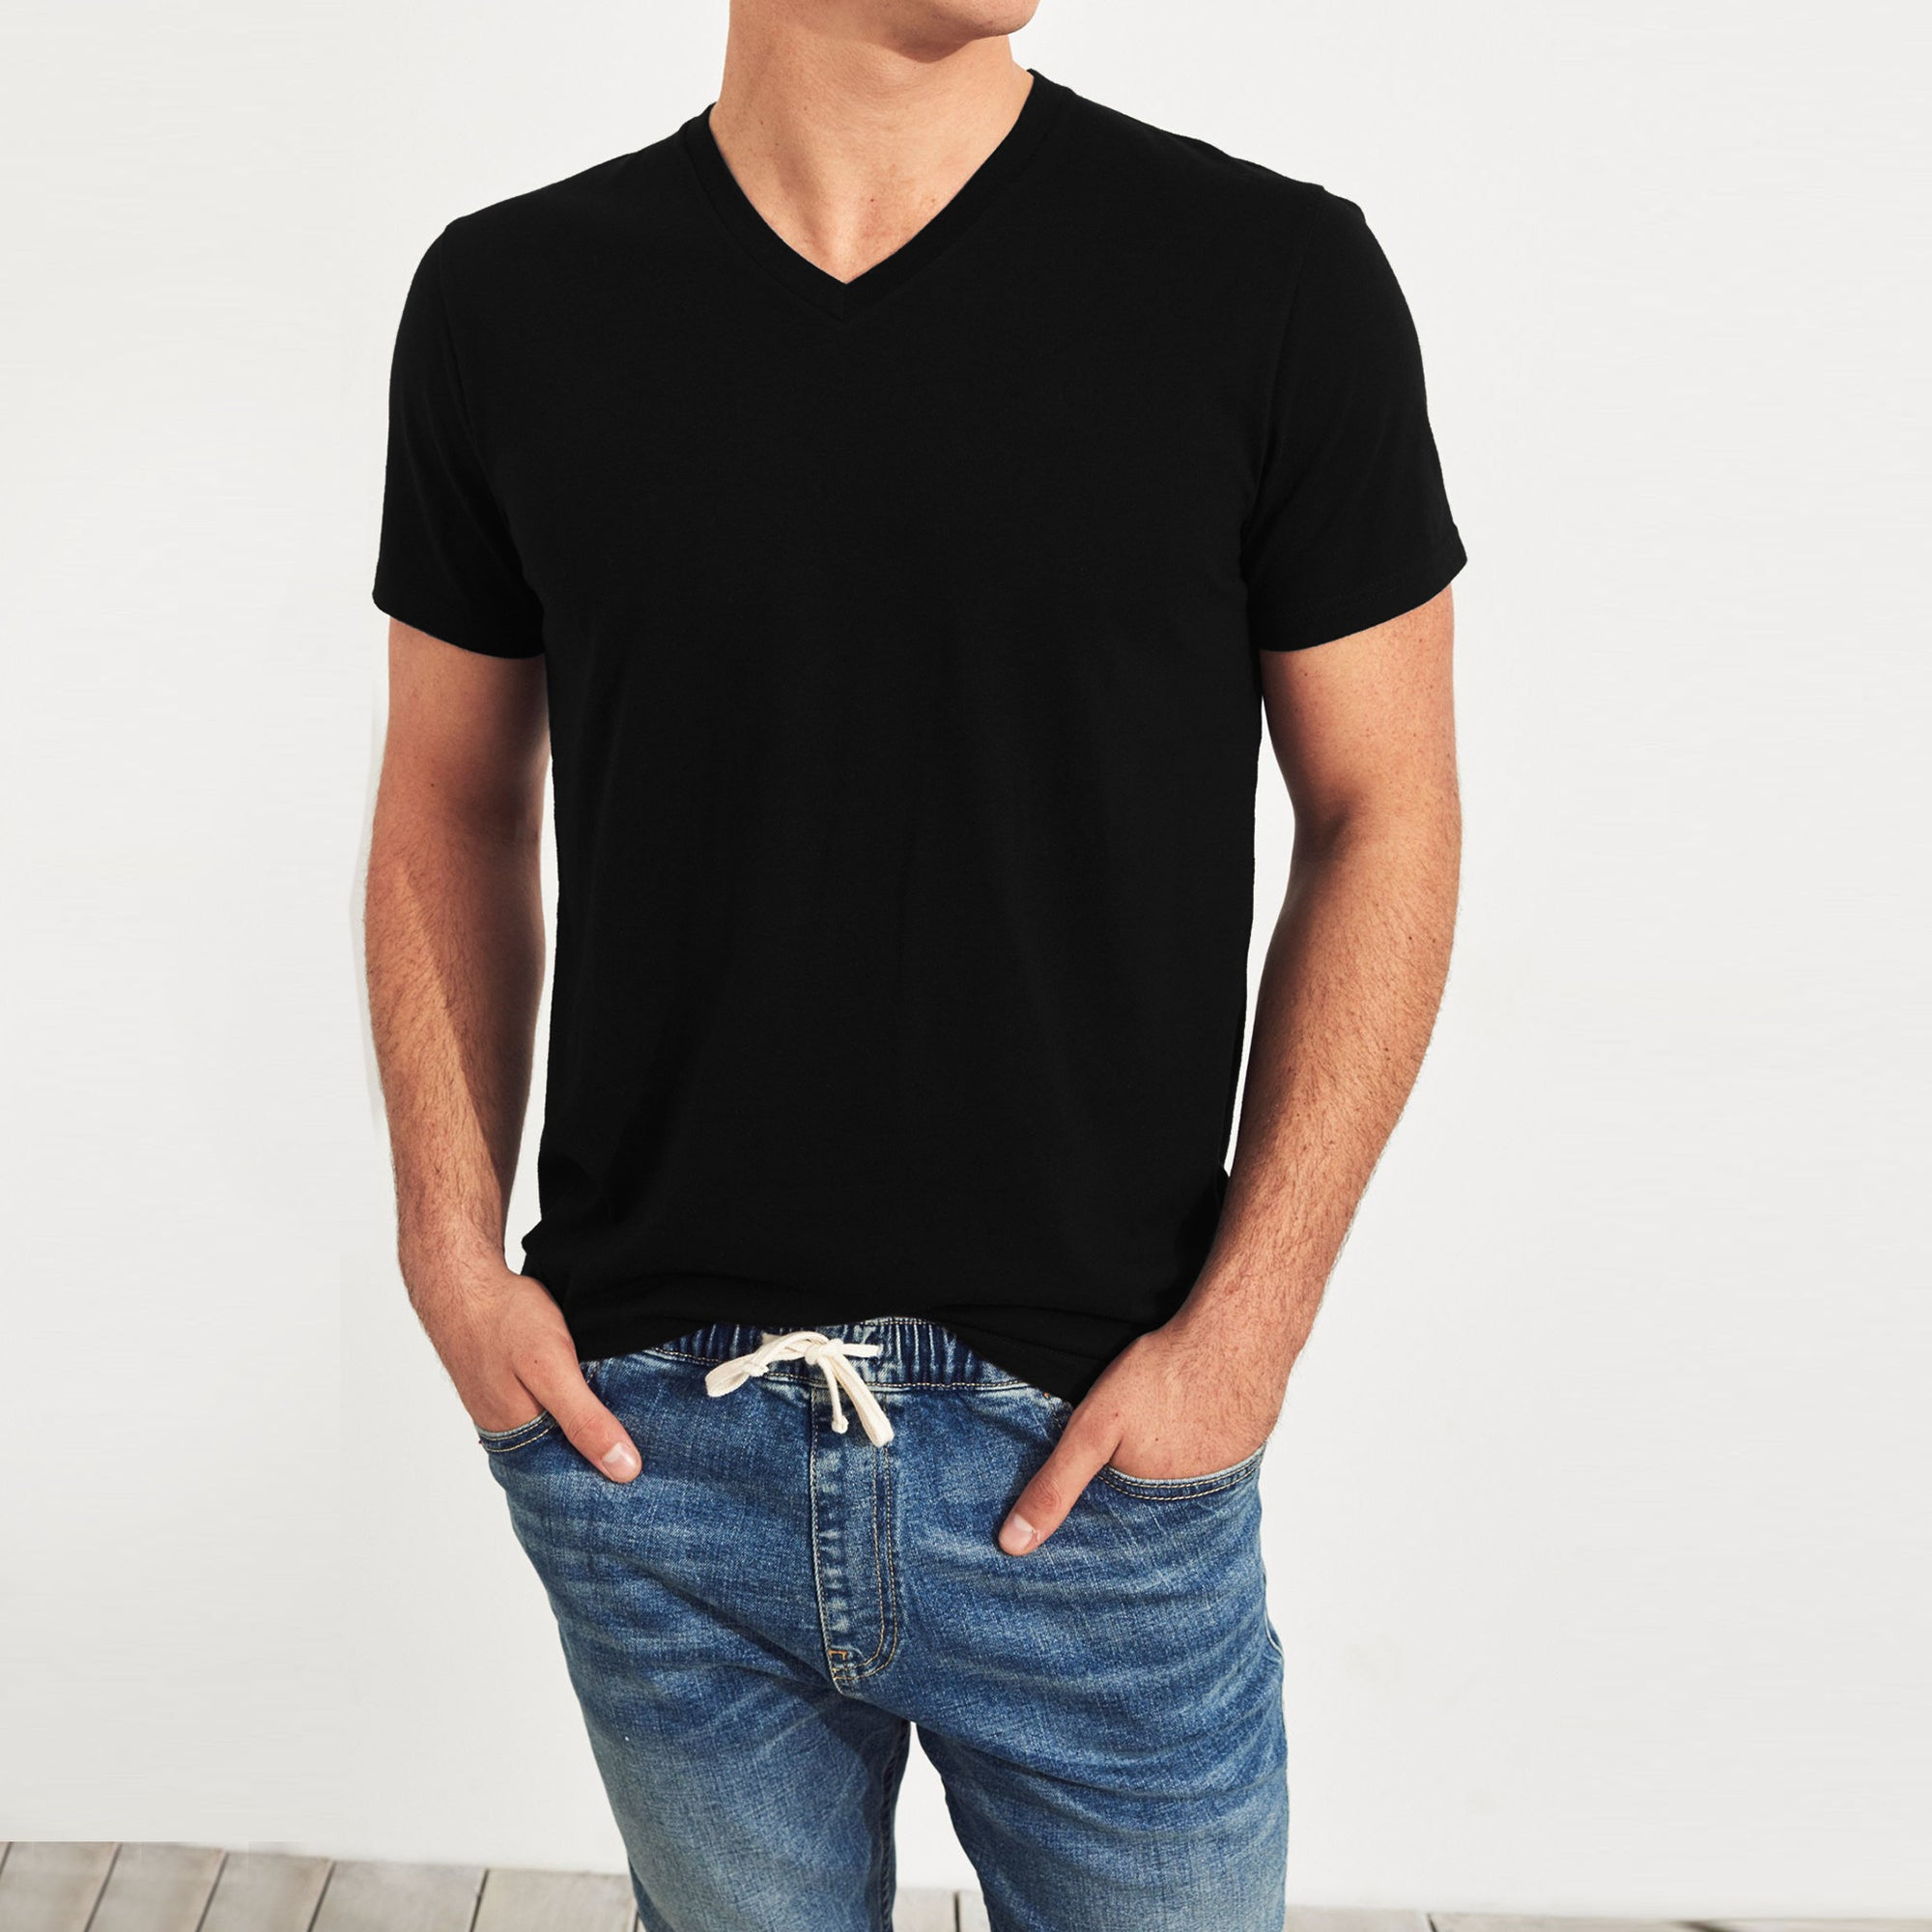 Beverly Hills V Neck Half Sleeve Tee Shirt For Men-Black-BE8900